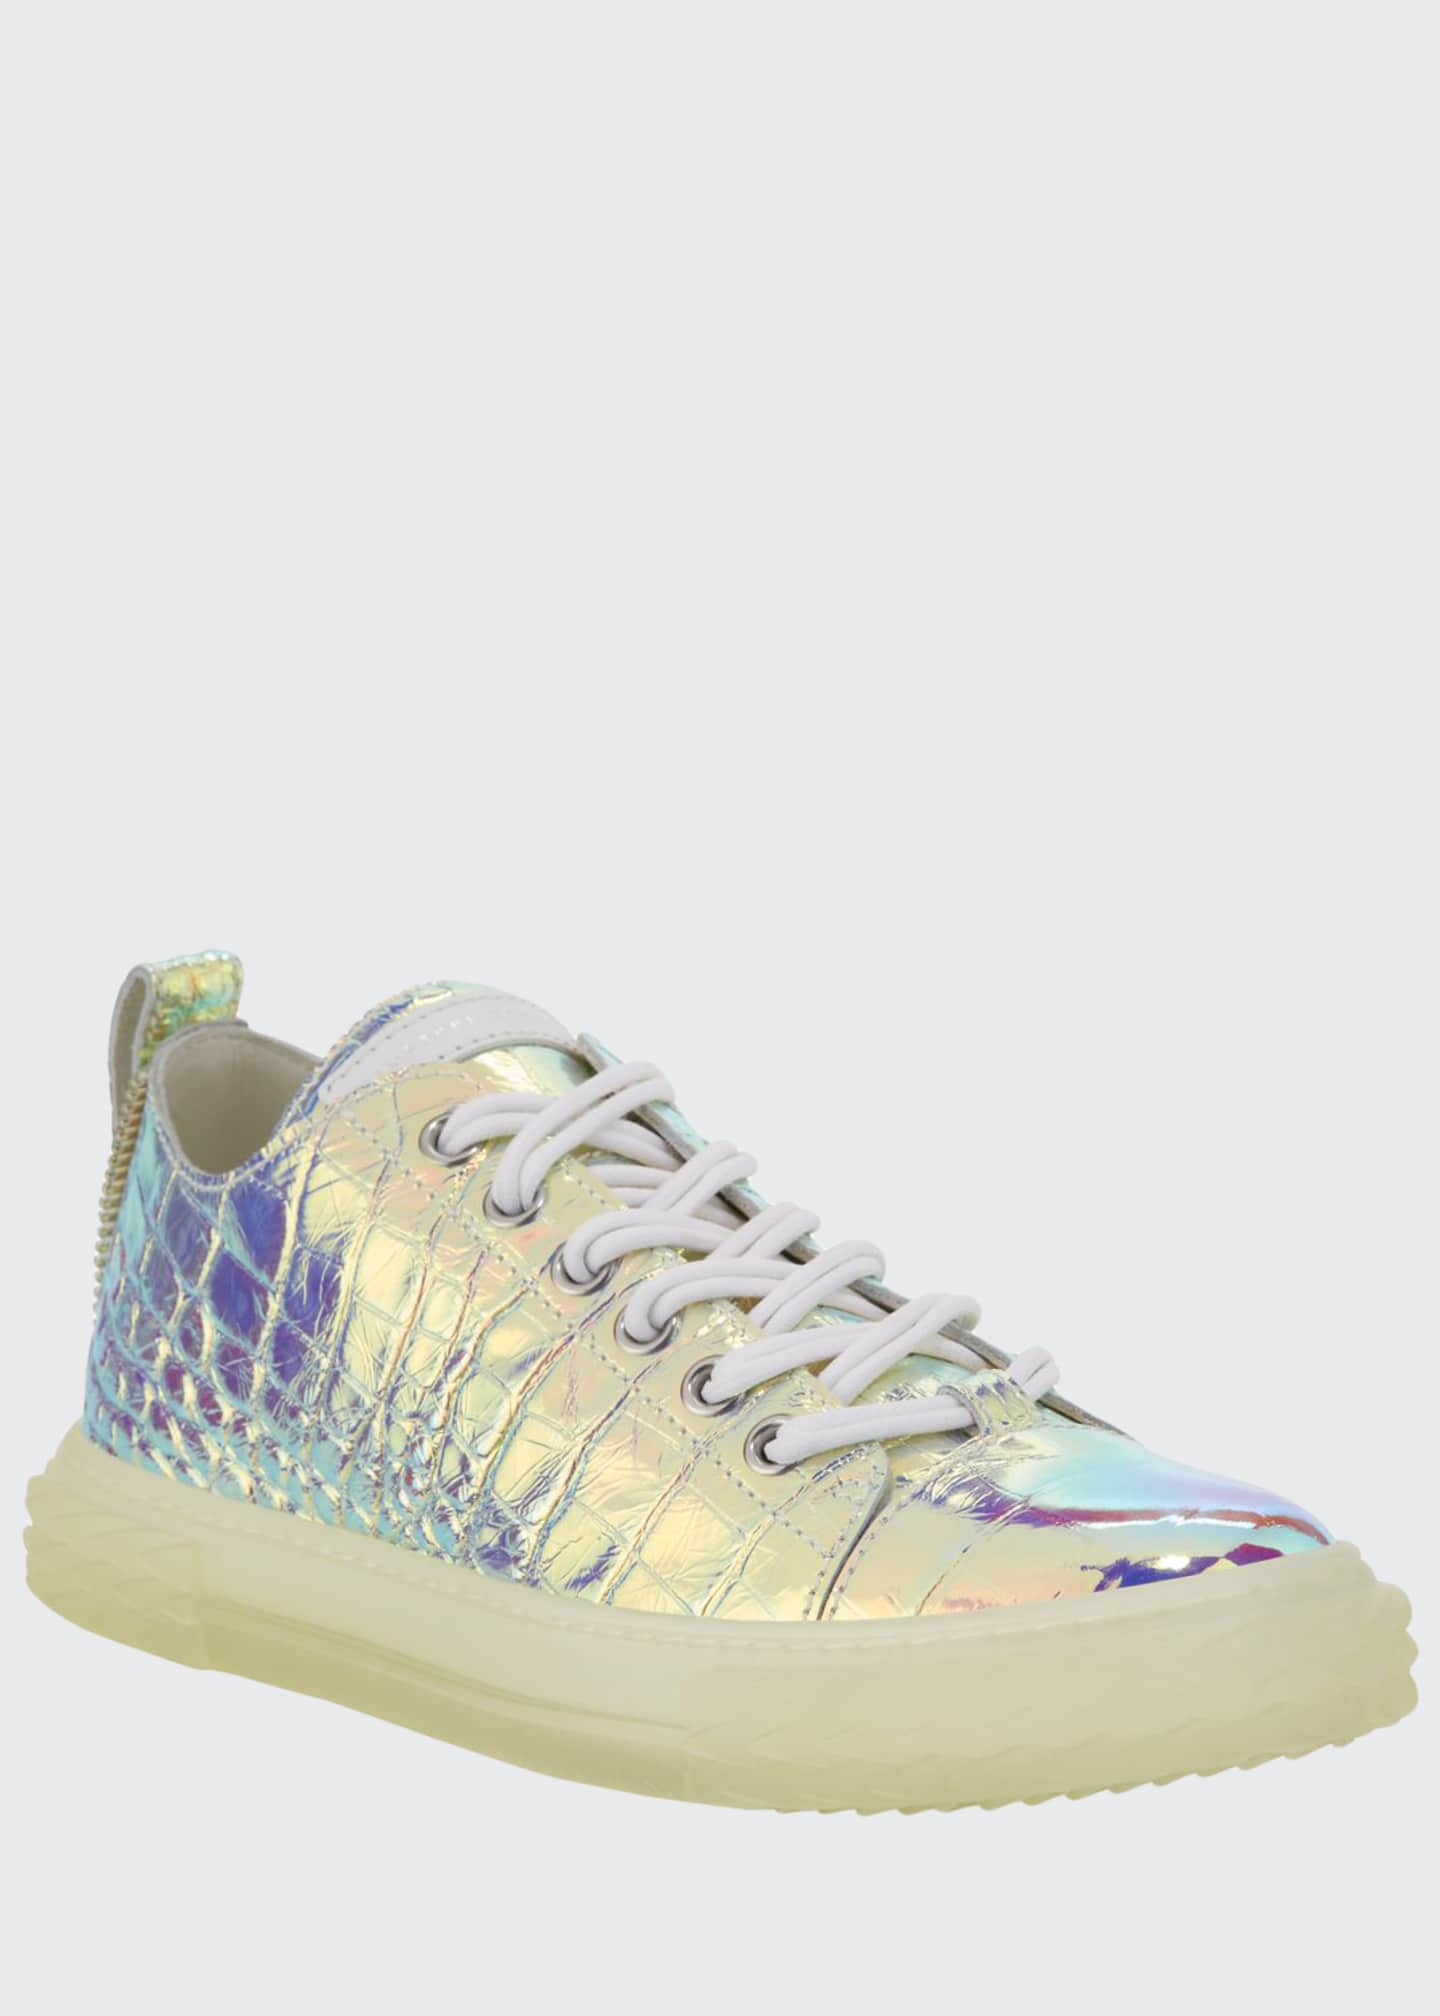 Image 1 of 4: Men's Iridescent Croc-Embossed Sneakers